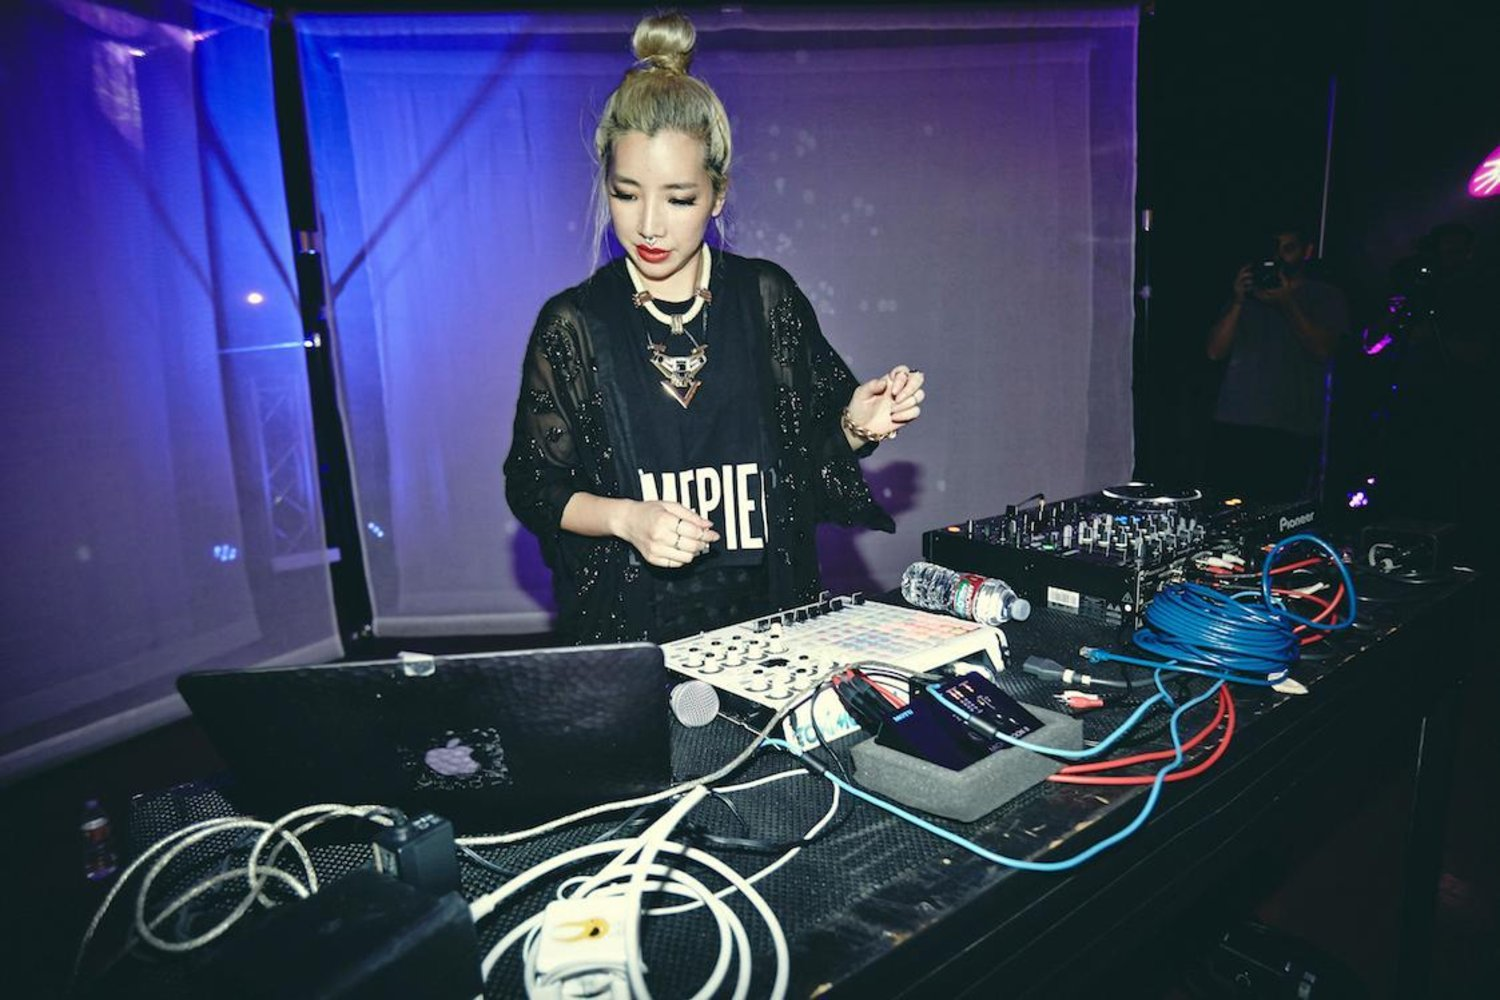 Tokimonsta performs at Red Bull Studios in Los Angeles, CA, USA on 17 September 2014.